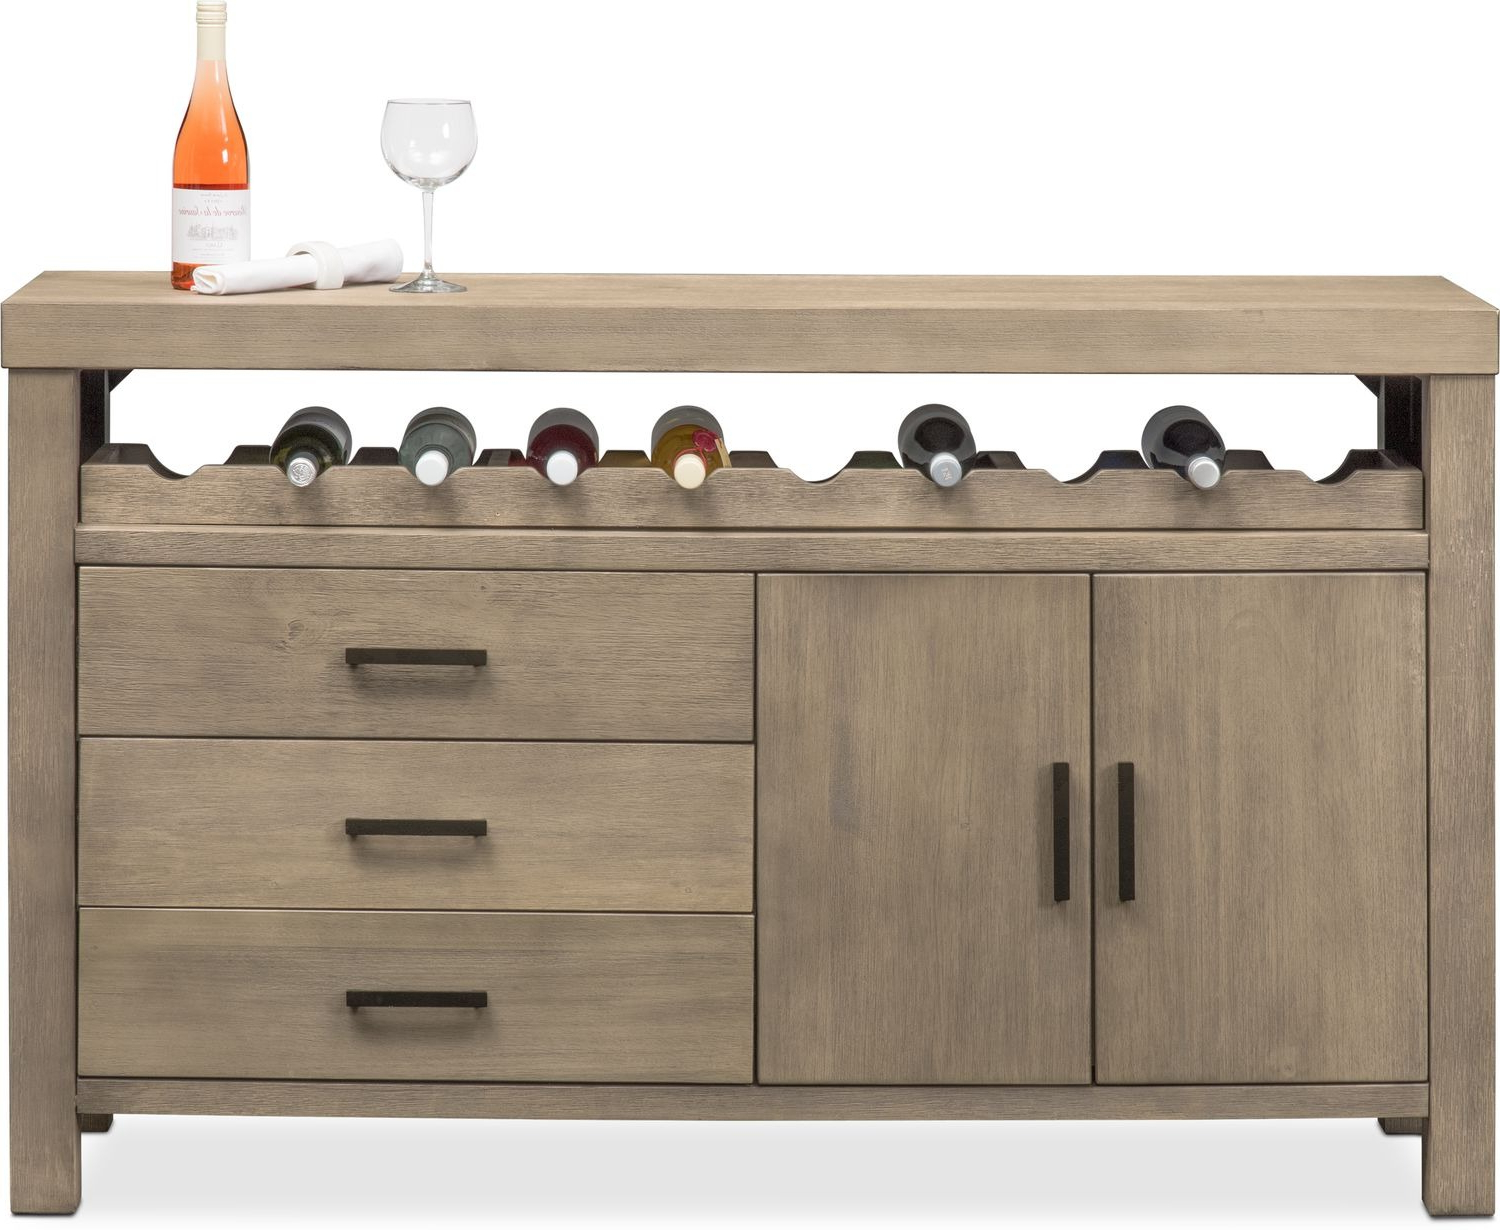 Tribeca Sideboard – Gray Intended For Tribeca Sideboards (View 11 of 20)